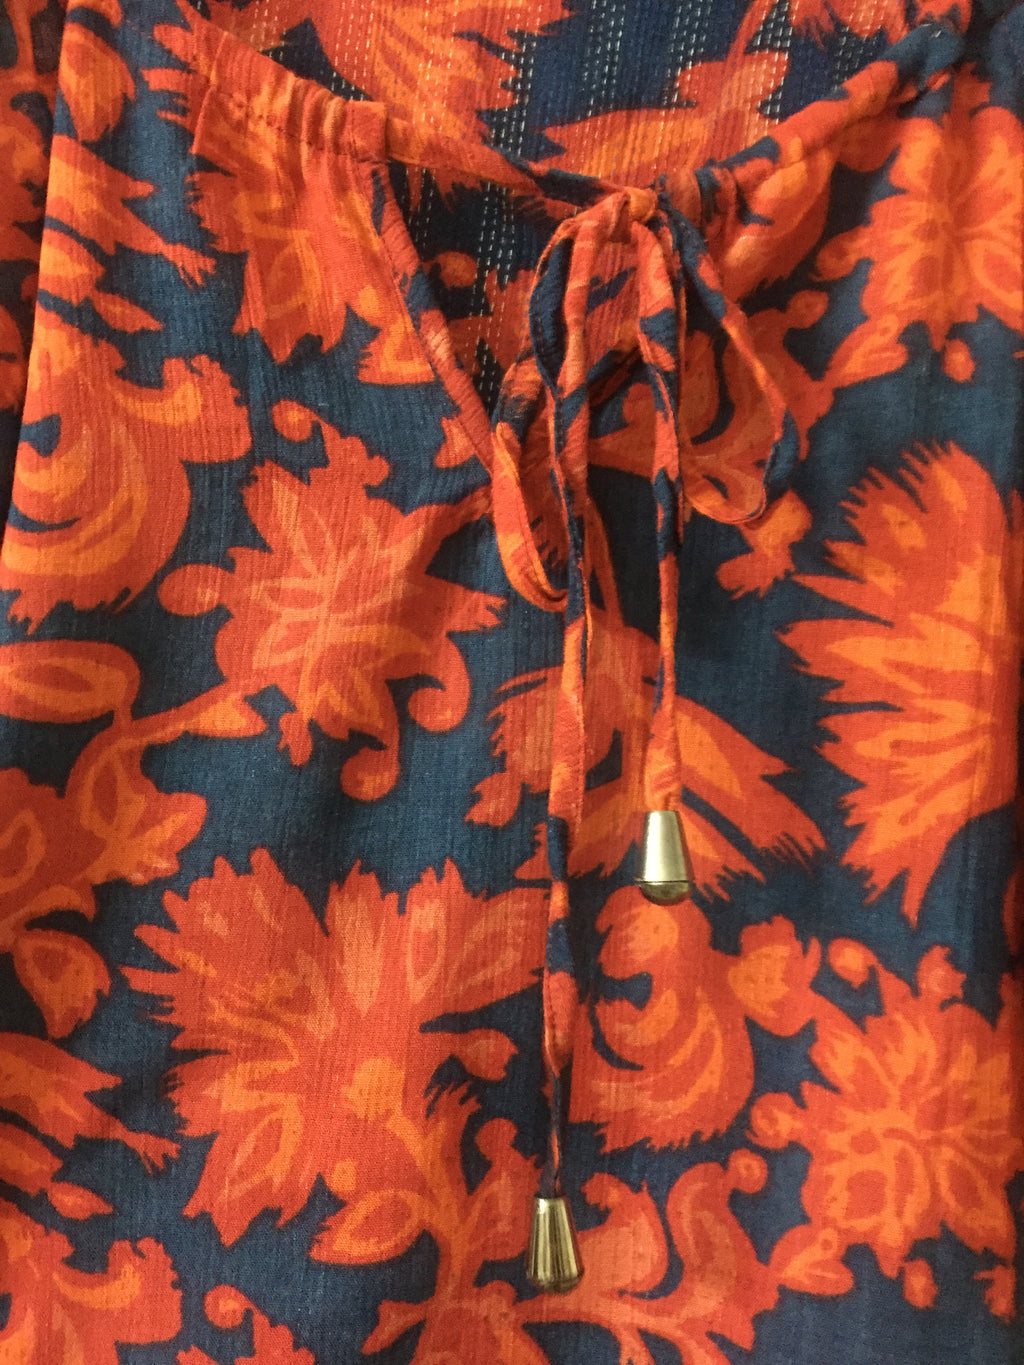 Laced - Arm exposing - Front Tie - Red-Orange Flowers on Blue Top